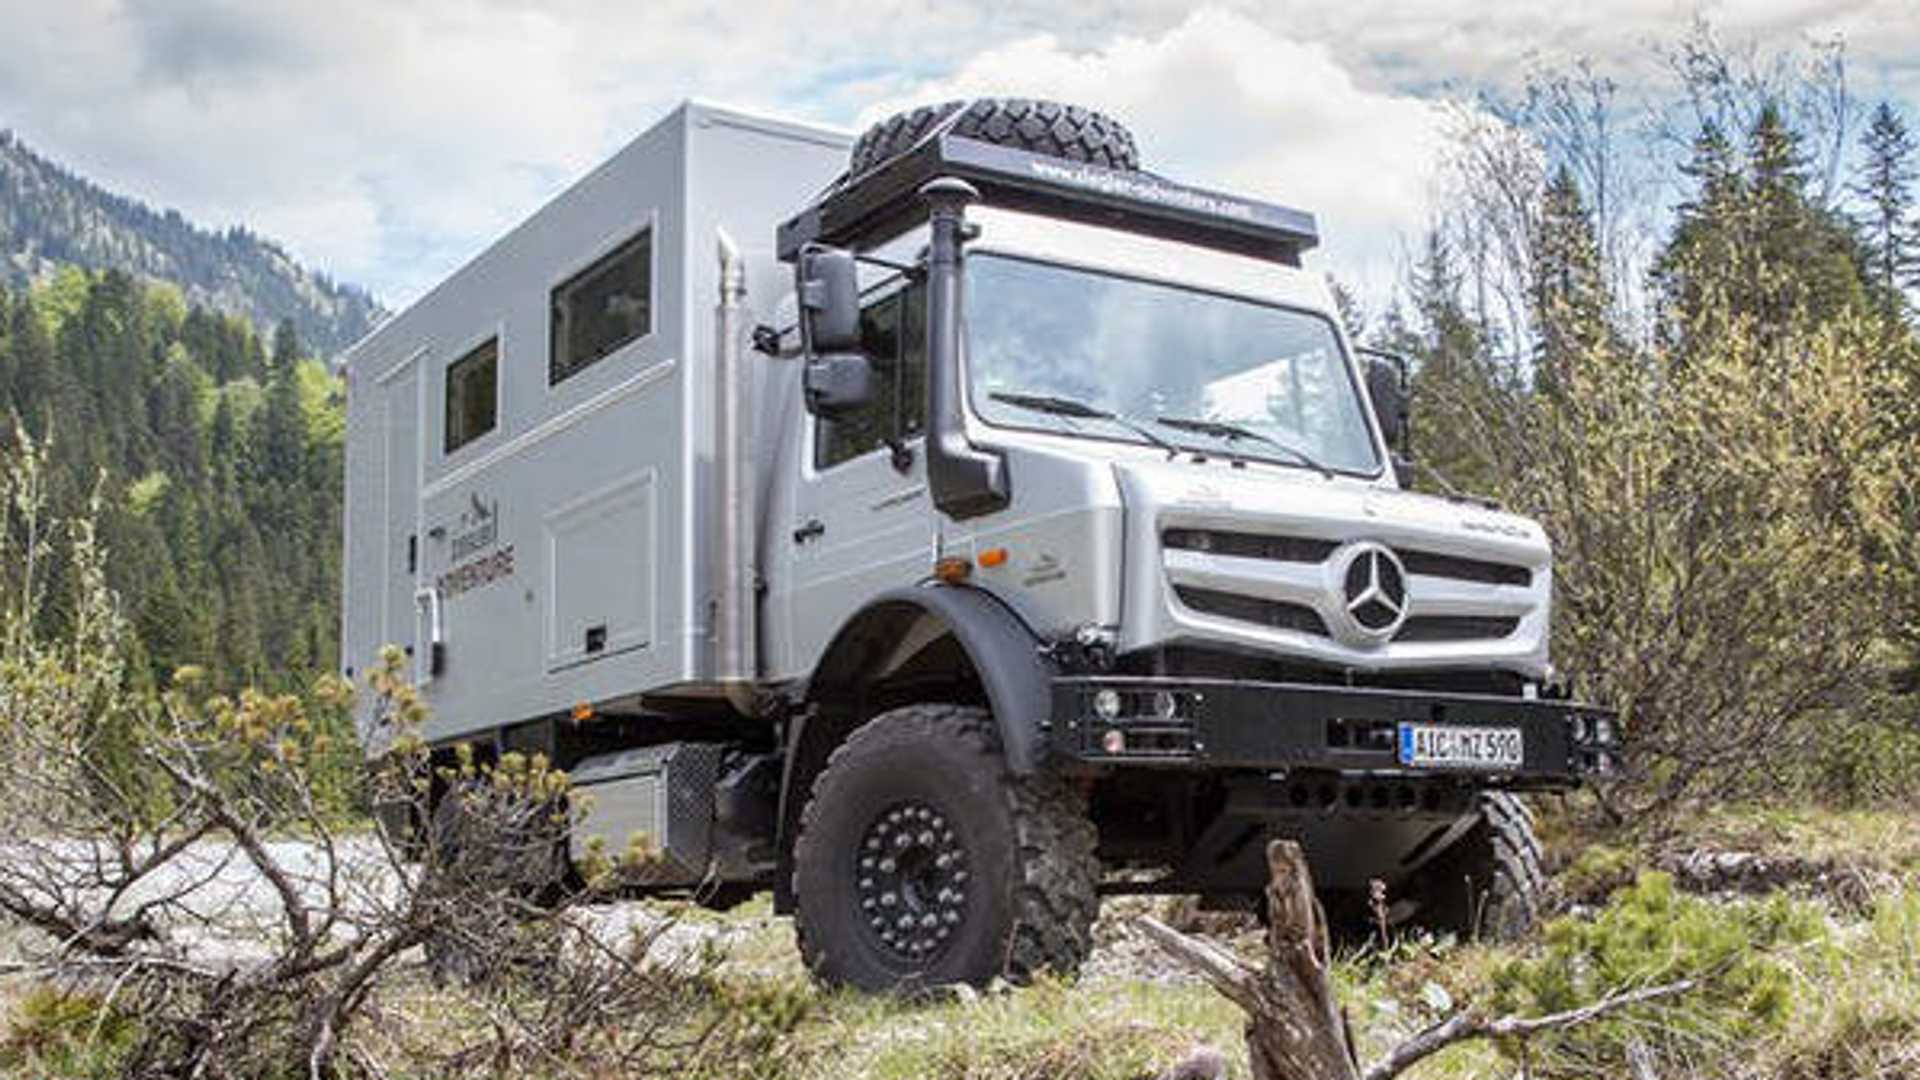 Moghome Is A Motorhome That Can Take You To The End Of The World